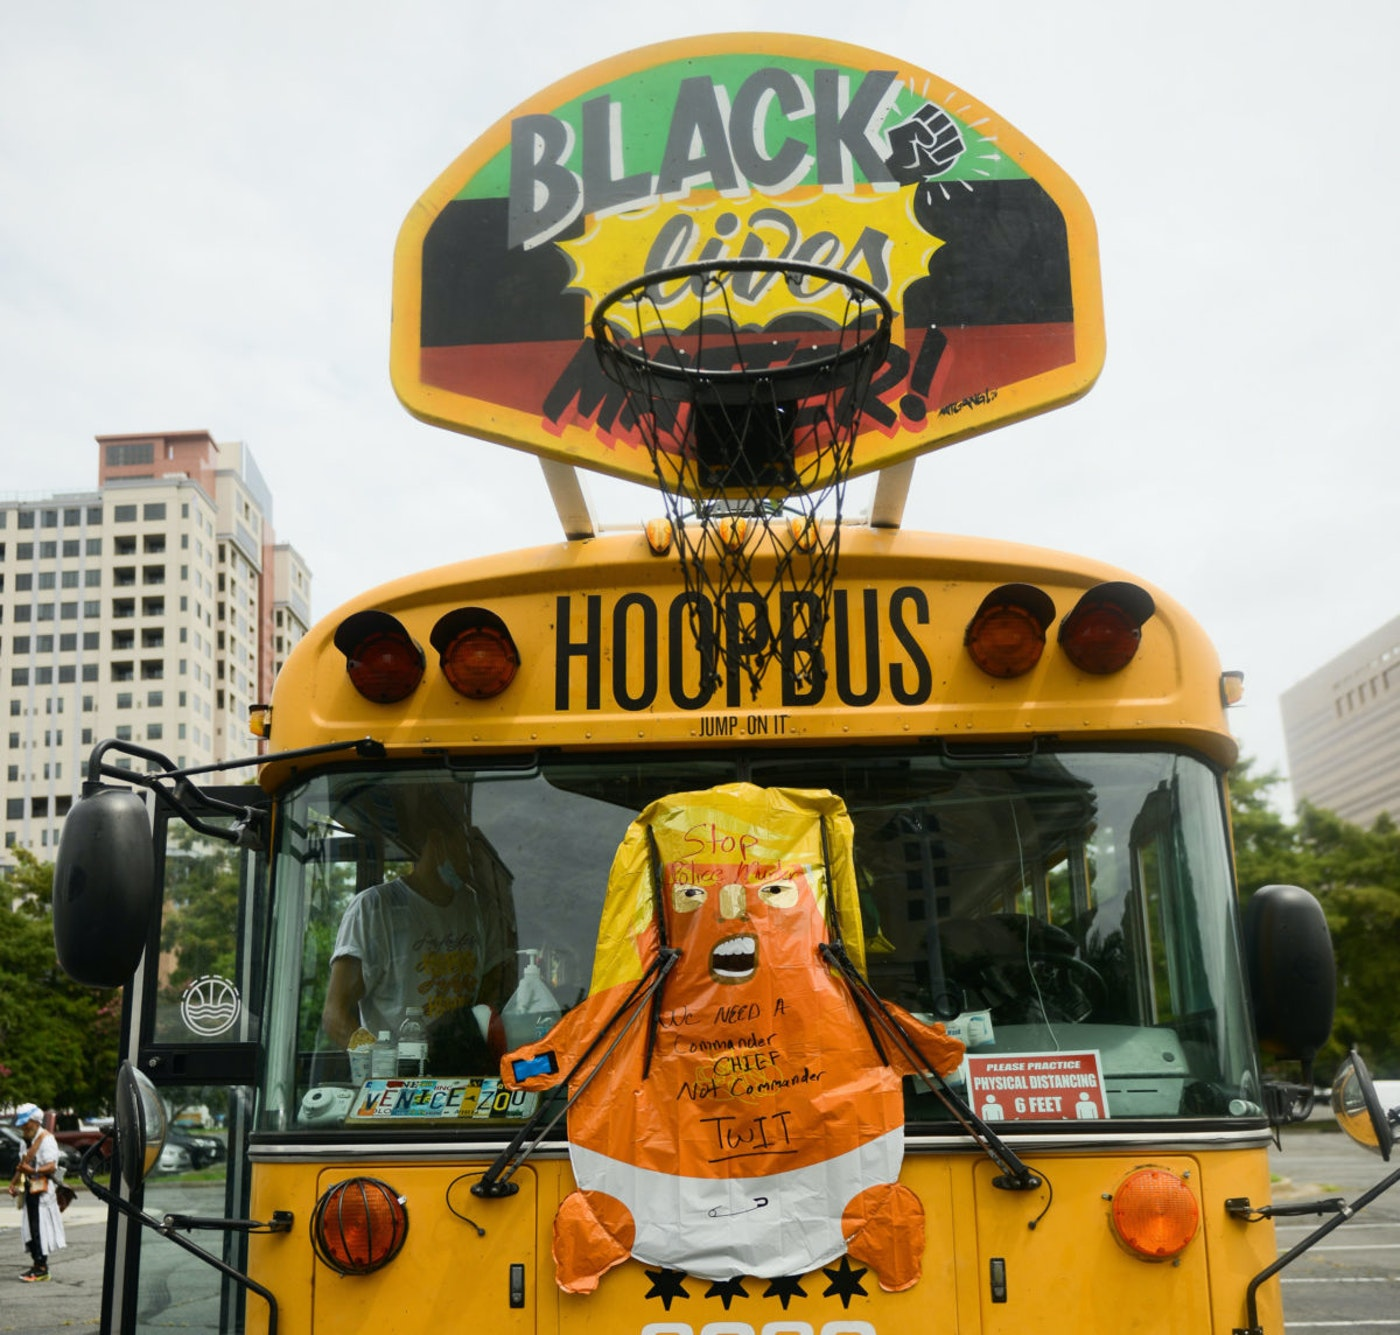 The anti-racist 'Hoop Bus' arrived in Charlotte in time for the Republican National Convention in August. (Image via Tyler Thompson)